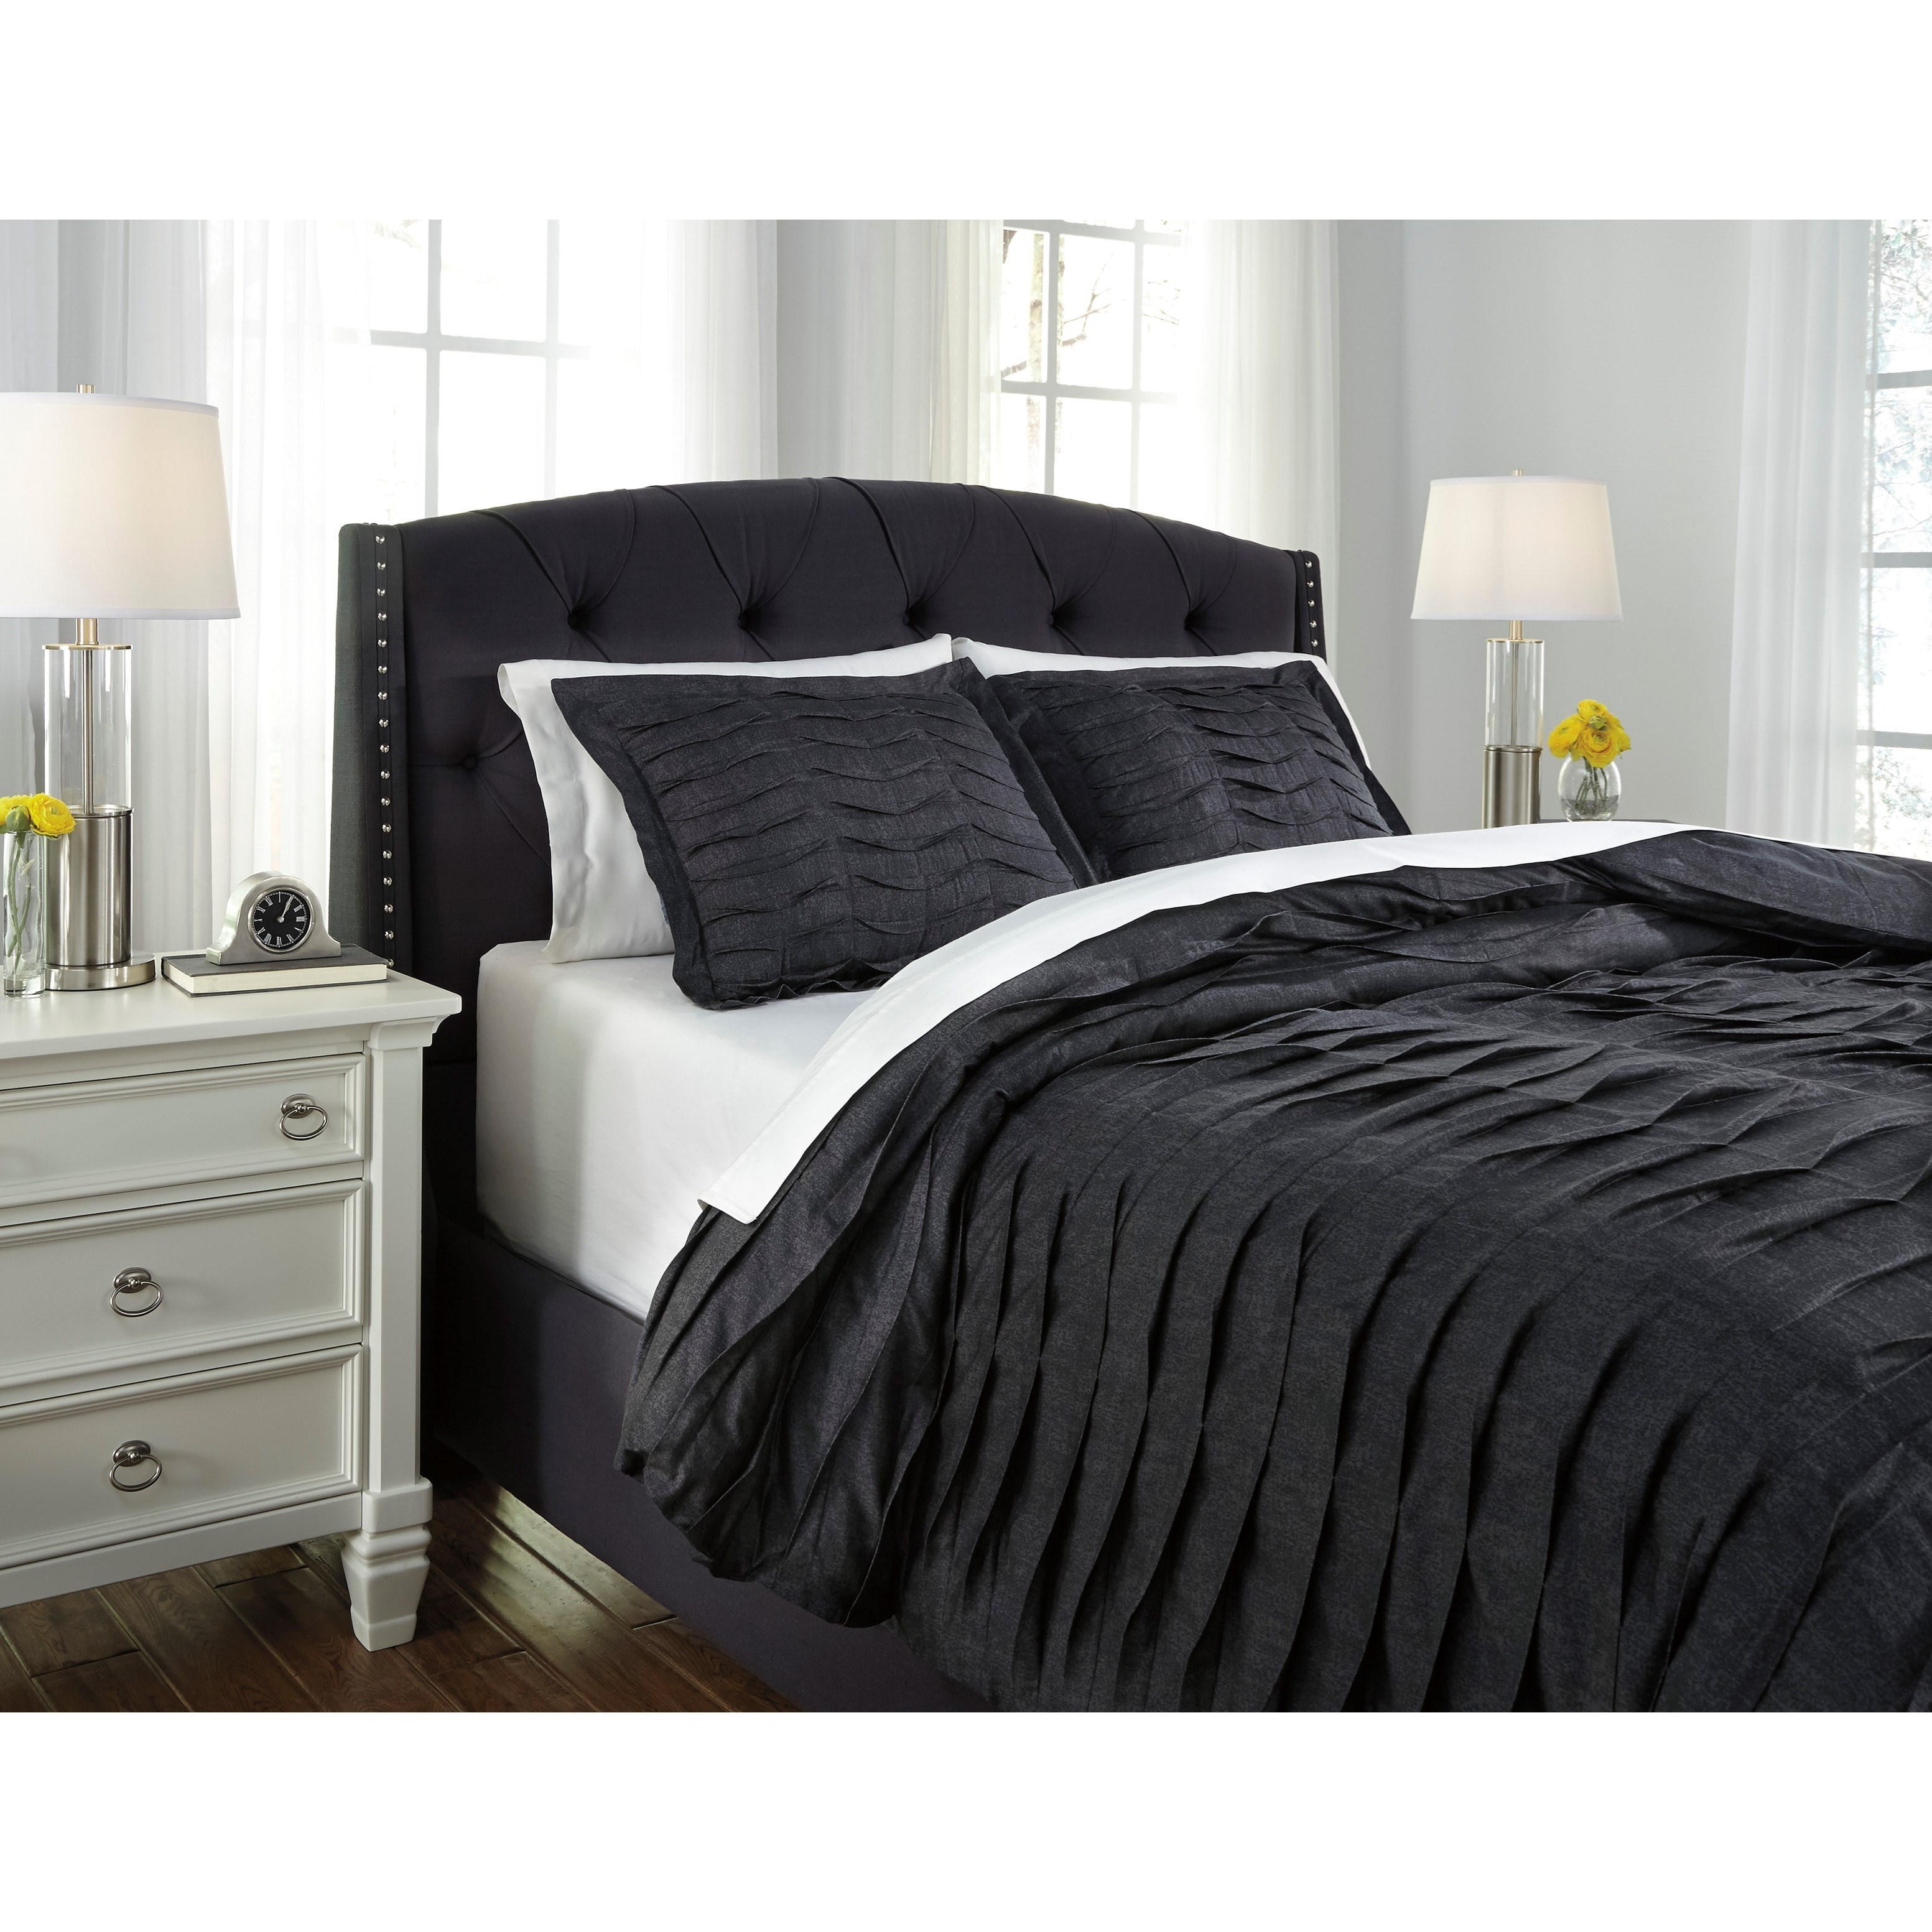 Charcoal Bedding Sets Bedding Sets Queen Voltos Charcoal Duvet Cover Set By Signature Design By Ashley At Royal Furniture